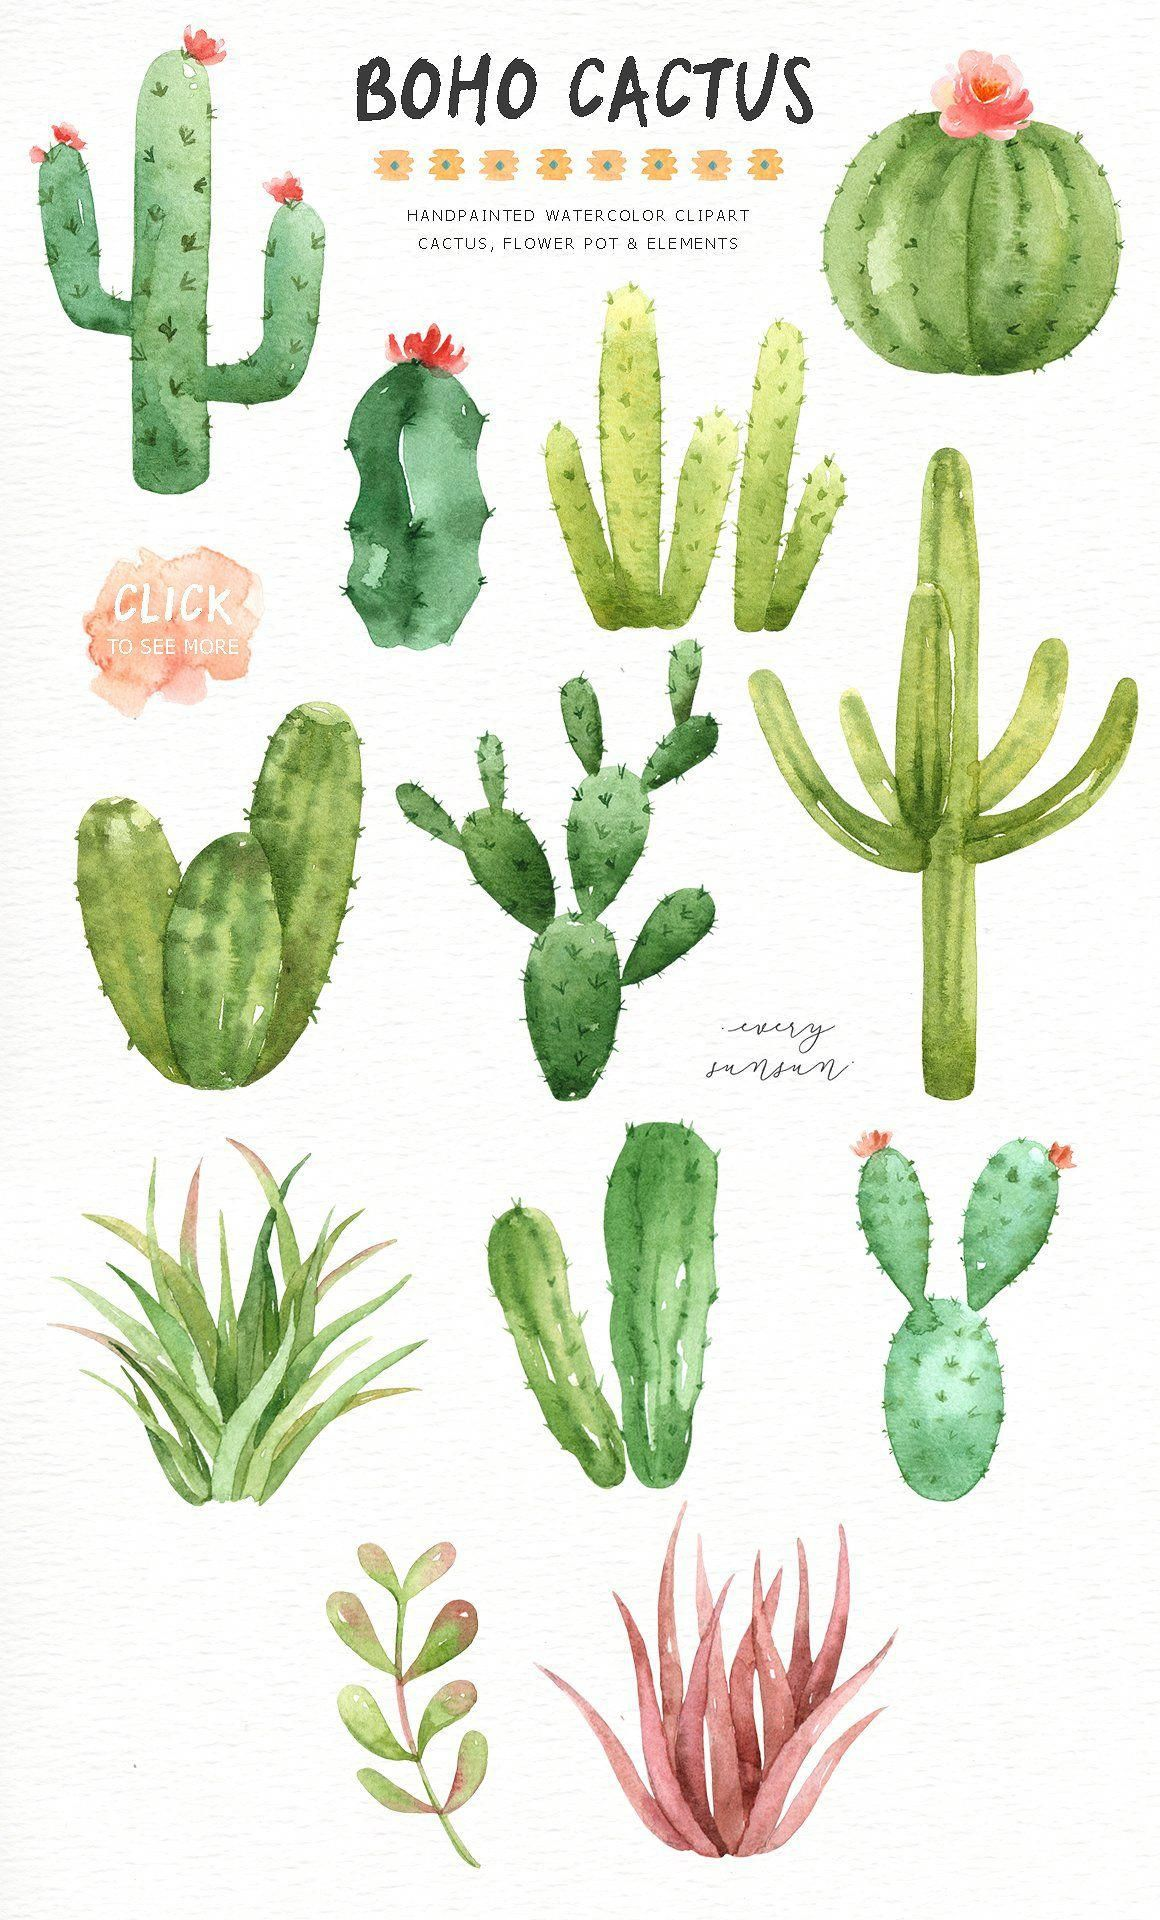 Boho Cactus Watercolor Clip Arts By Everysunsun On Creativemarket